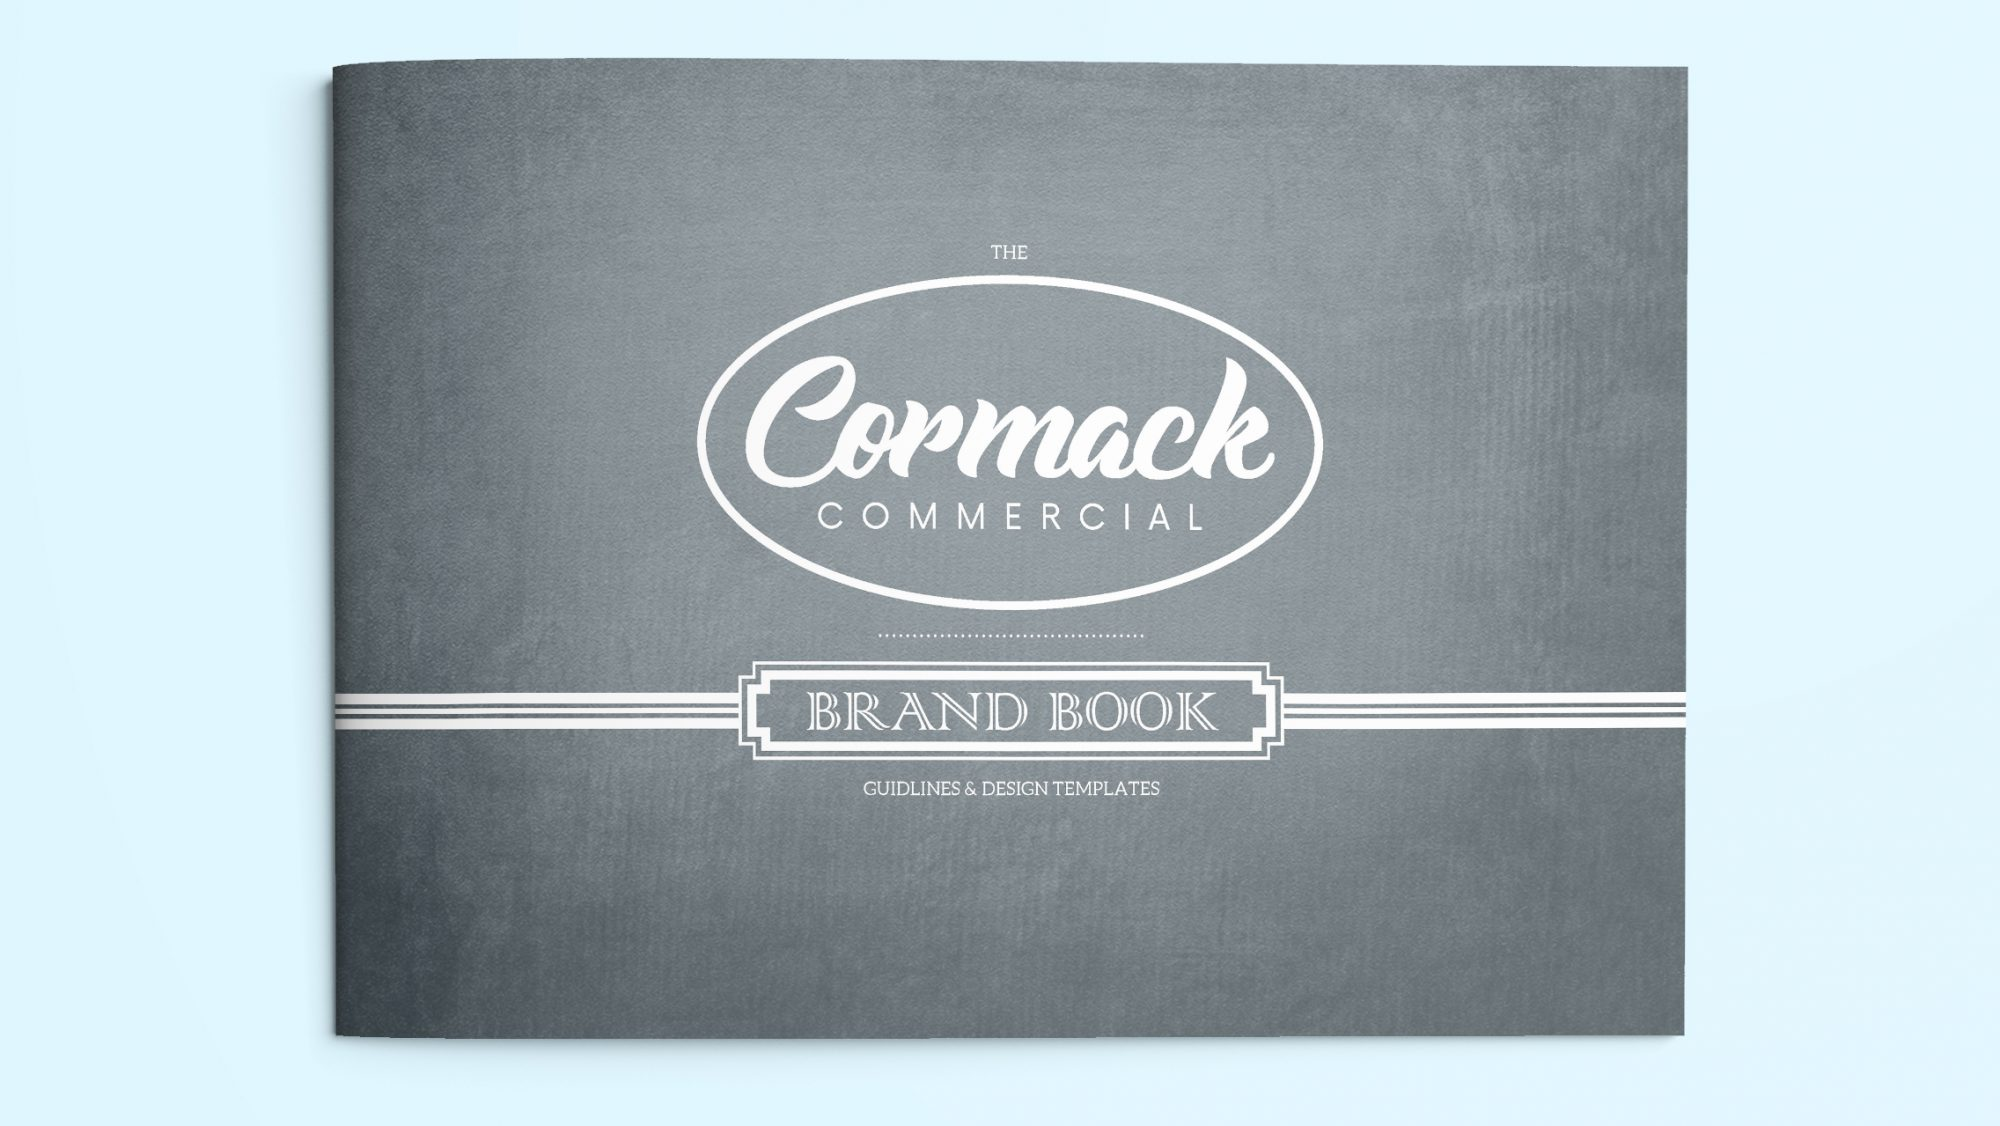 Cormack Commercial Brand Mockup 01 - Resurrect Your Brand This Easter